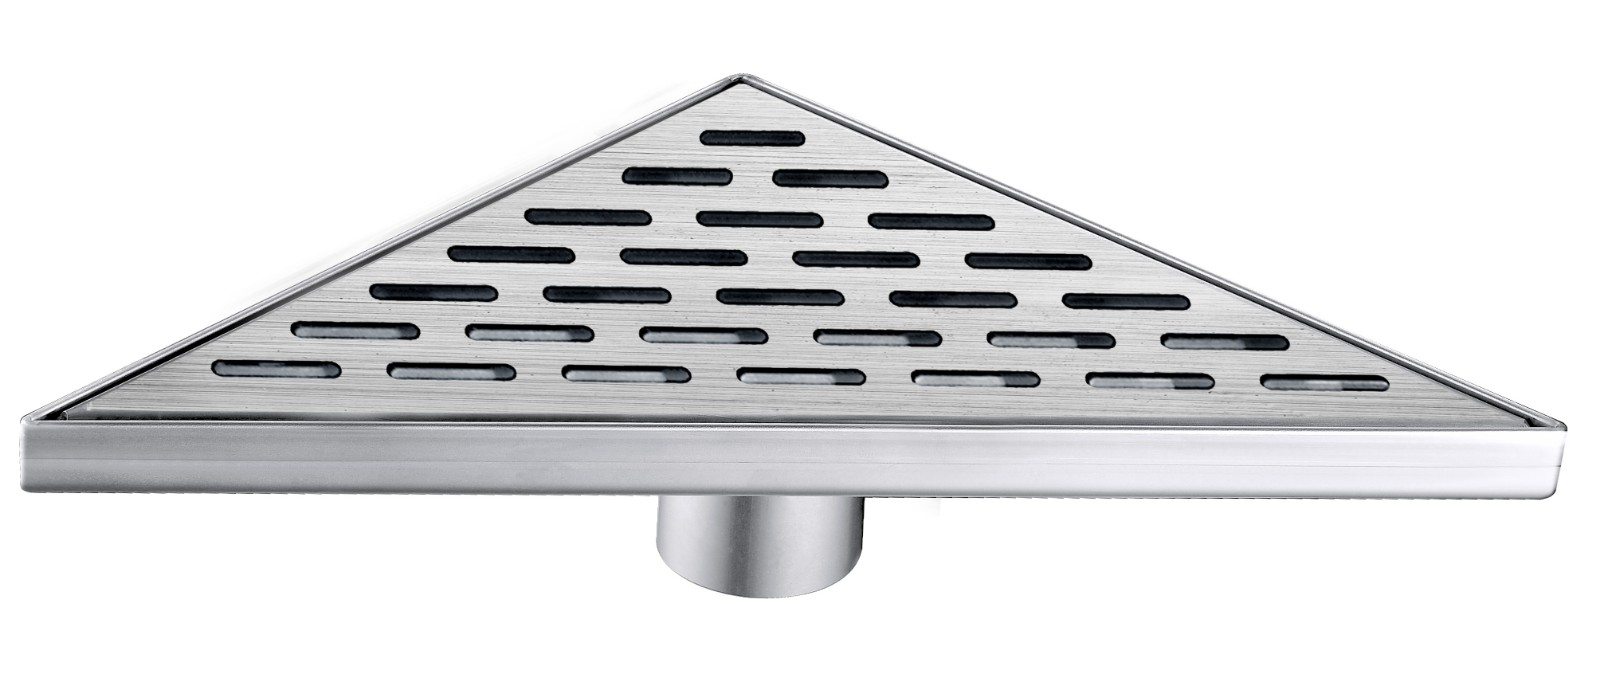 Norye bathroom trench drain supply for residential-1